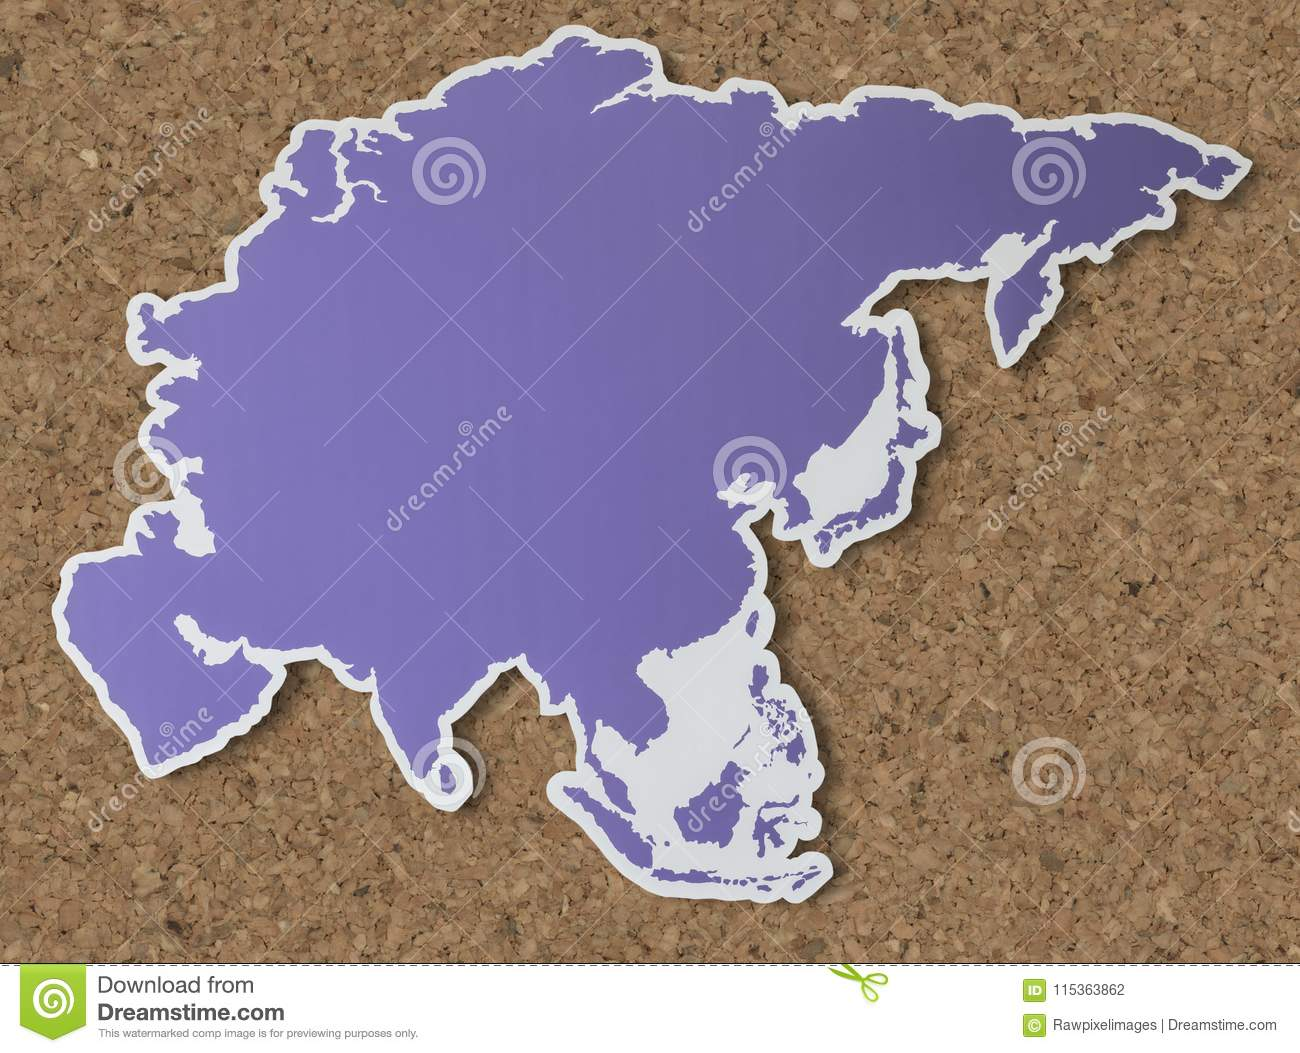 Free Blank Map Of South East Asia Stock Illustration ... on blank map of russia and ukraine, blank outline map russia, fill in maps of russia, large blank map of russia, blagoveshchensk russia, blank map of russia and the republics, kuril islands on map of russia, printable map russia, blank russian map, physical features of russia, google maps russia, outline of russia, blank political map of russia, blank map of western russia, blank physical map of russia, blackline map of russia, how close is alaska to russia, new siberian islands russia, blank russia map with rivers, blank map of russia and neighboring countries,